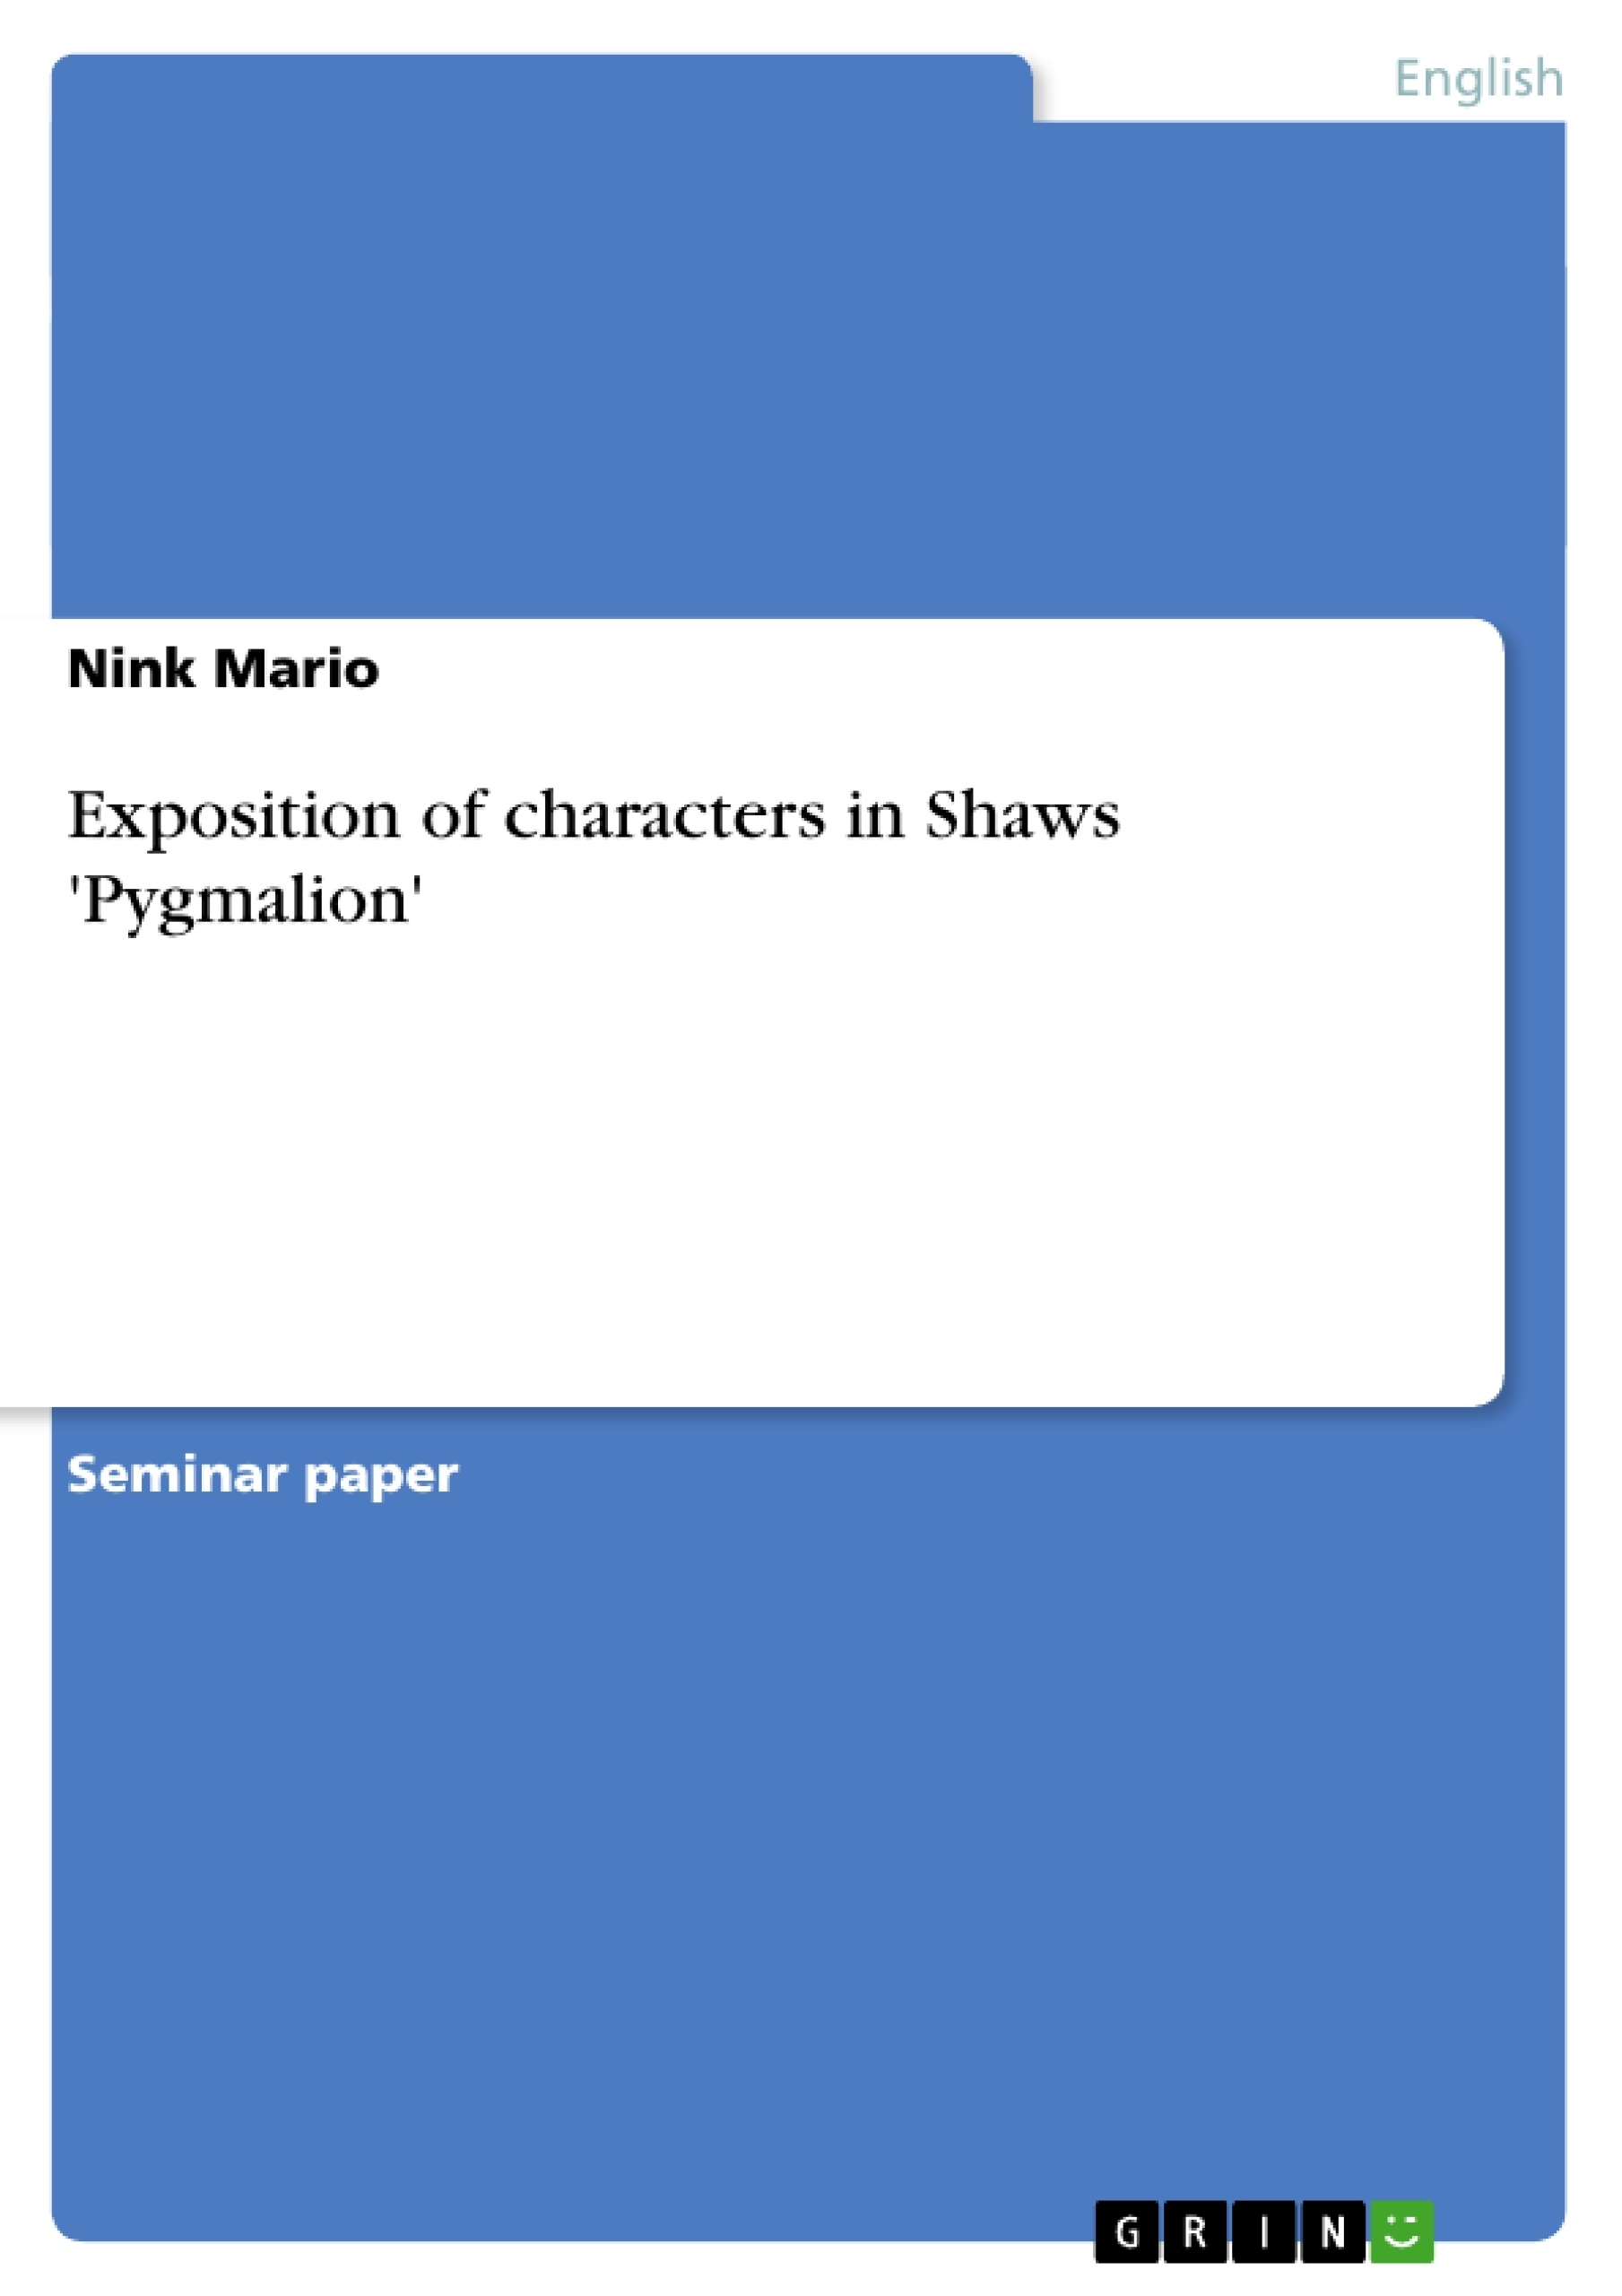 exposition of characters in shaws pyg on publish your upload your own papers earn money and win an iphone 7